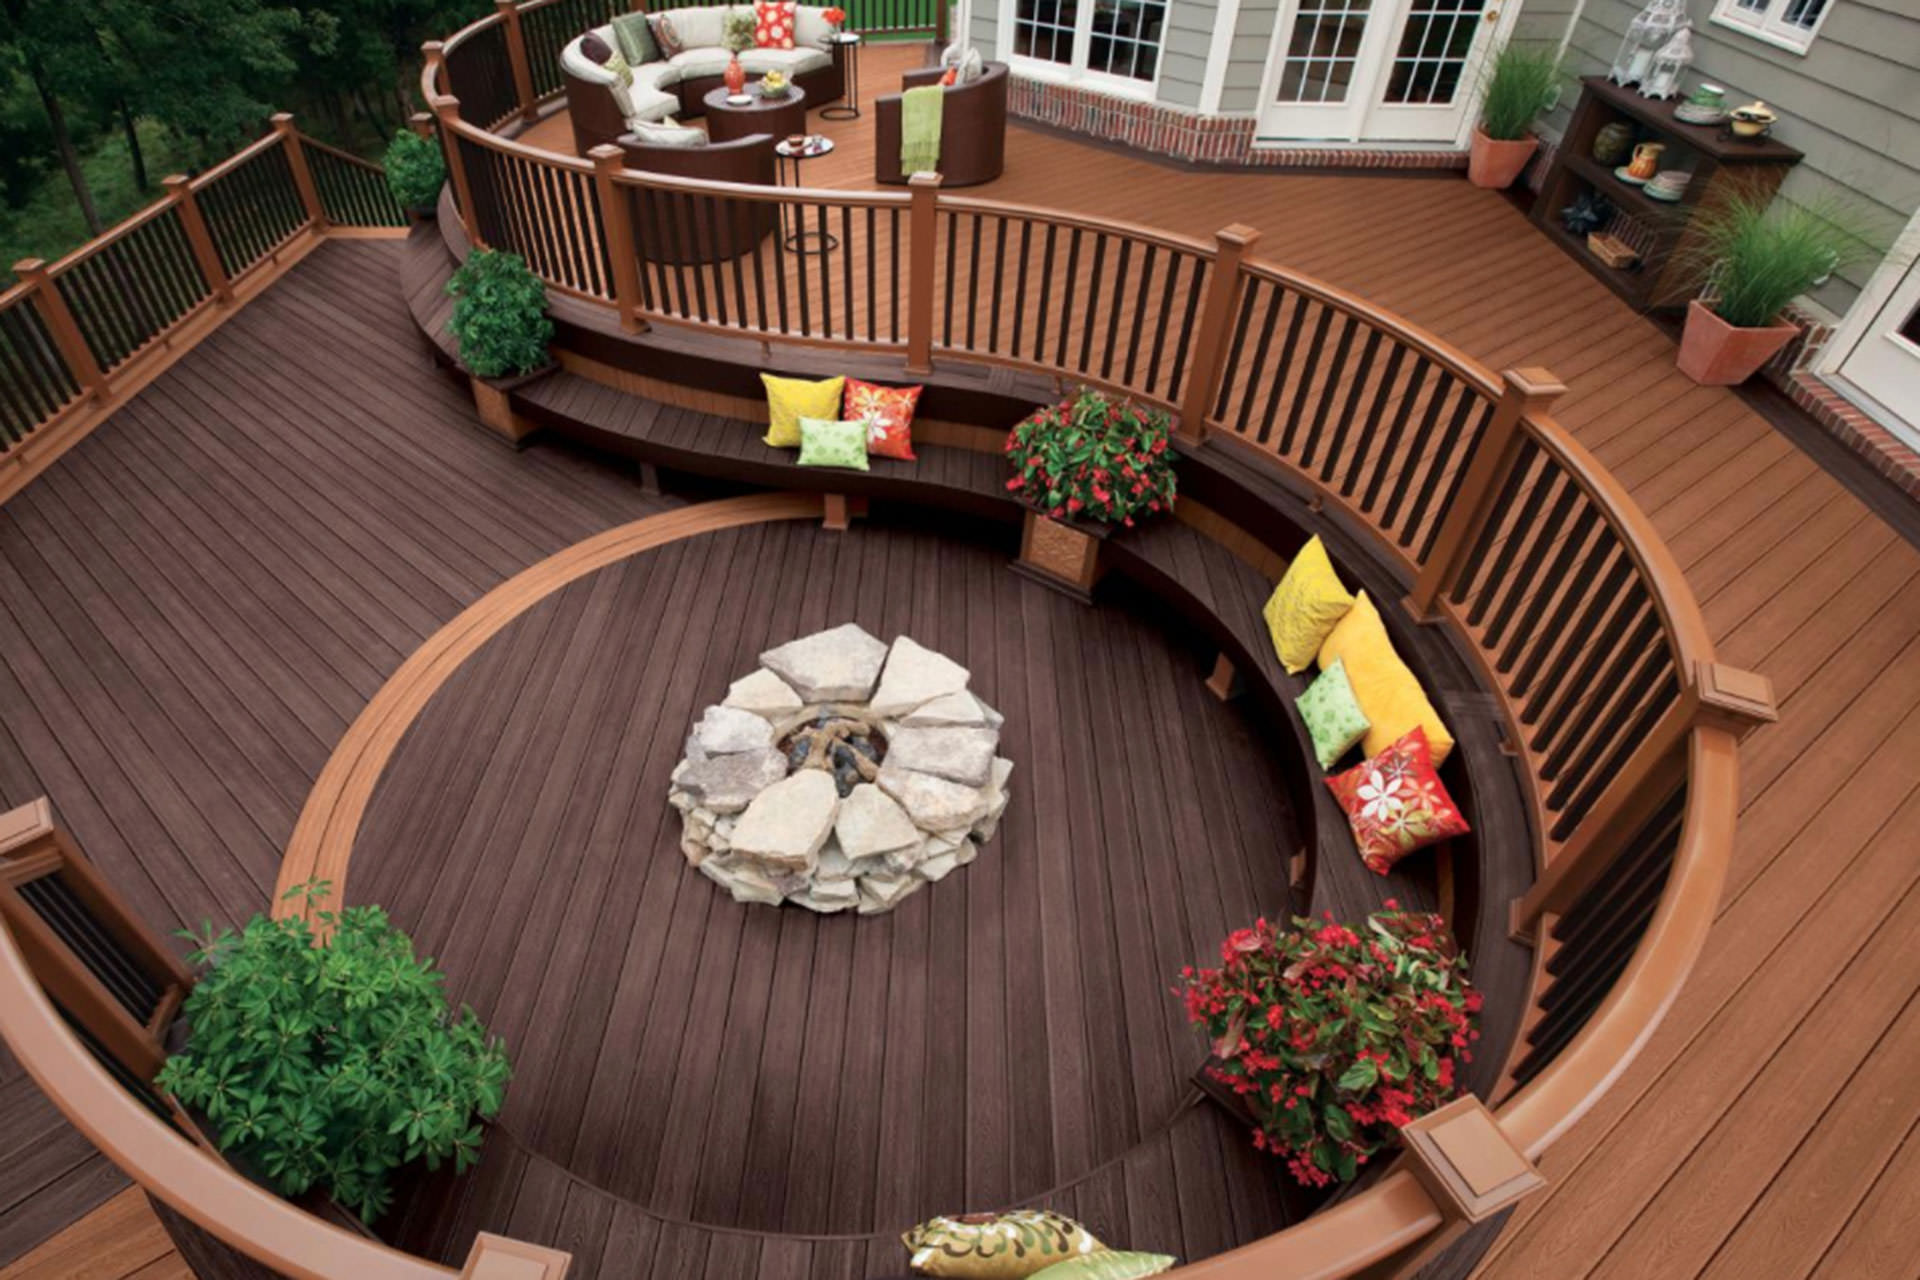 Wood Composite Or Pvc A Guide To Choosing Deck Materials